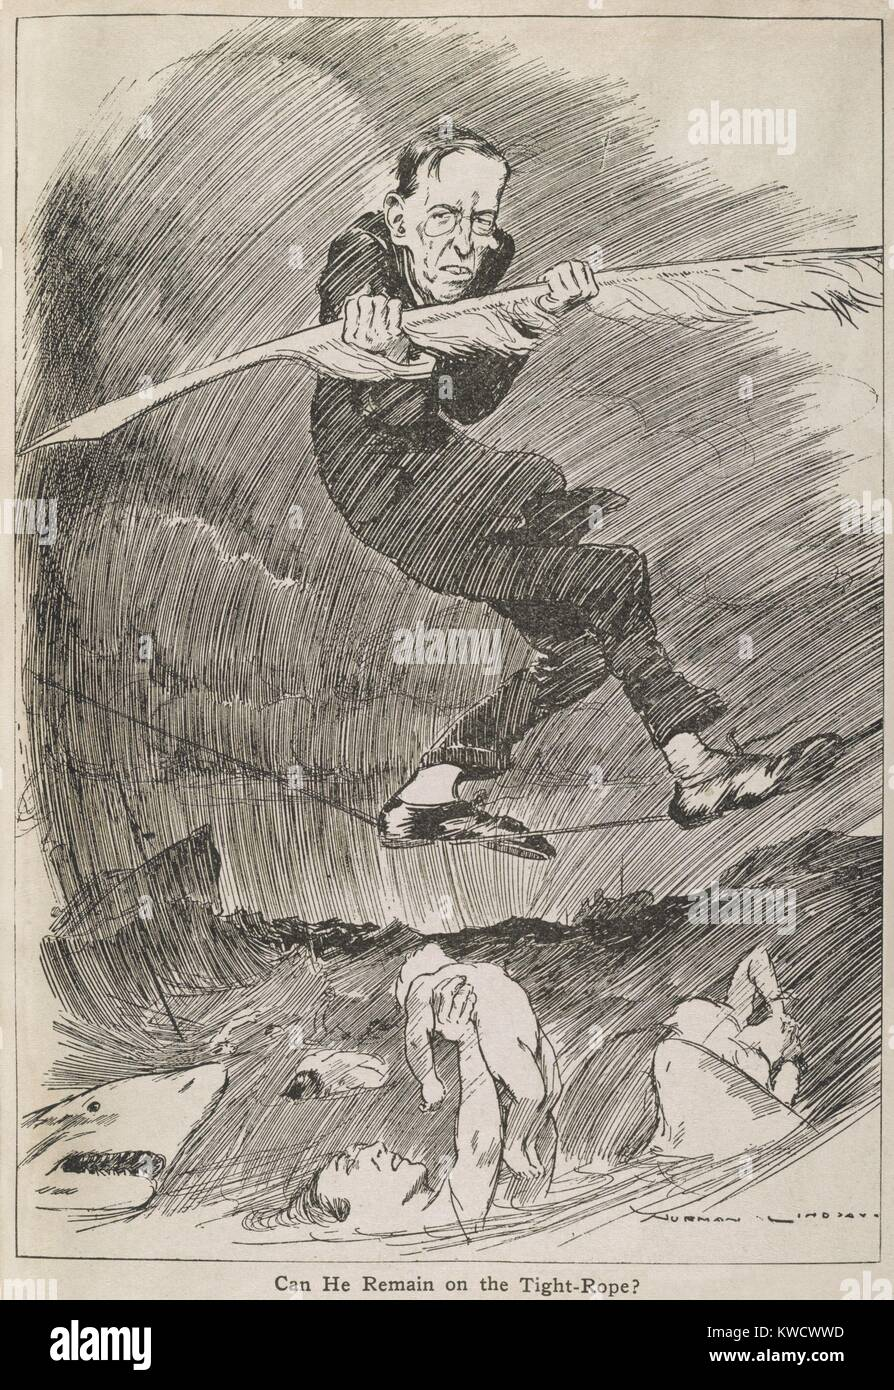 CAN HE REMAIN ON THE TIGHT-ROPE? President Woodrow Wilson balancing with a quill pen, on a tightrope over a shark - Stock Image